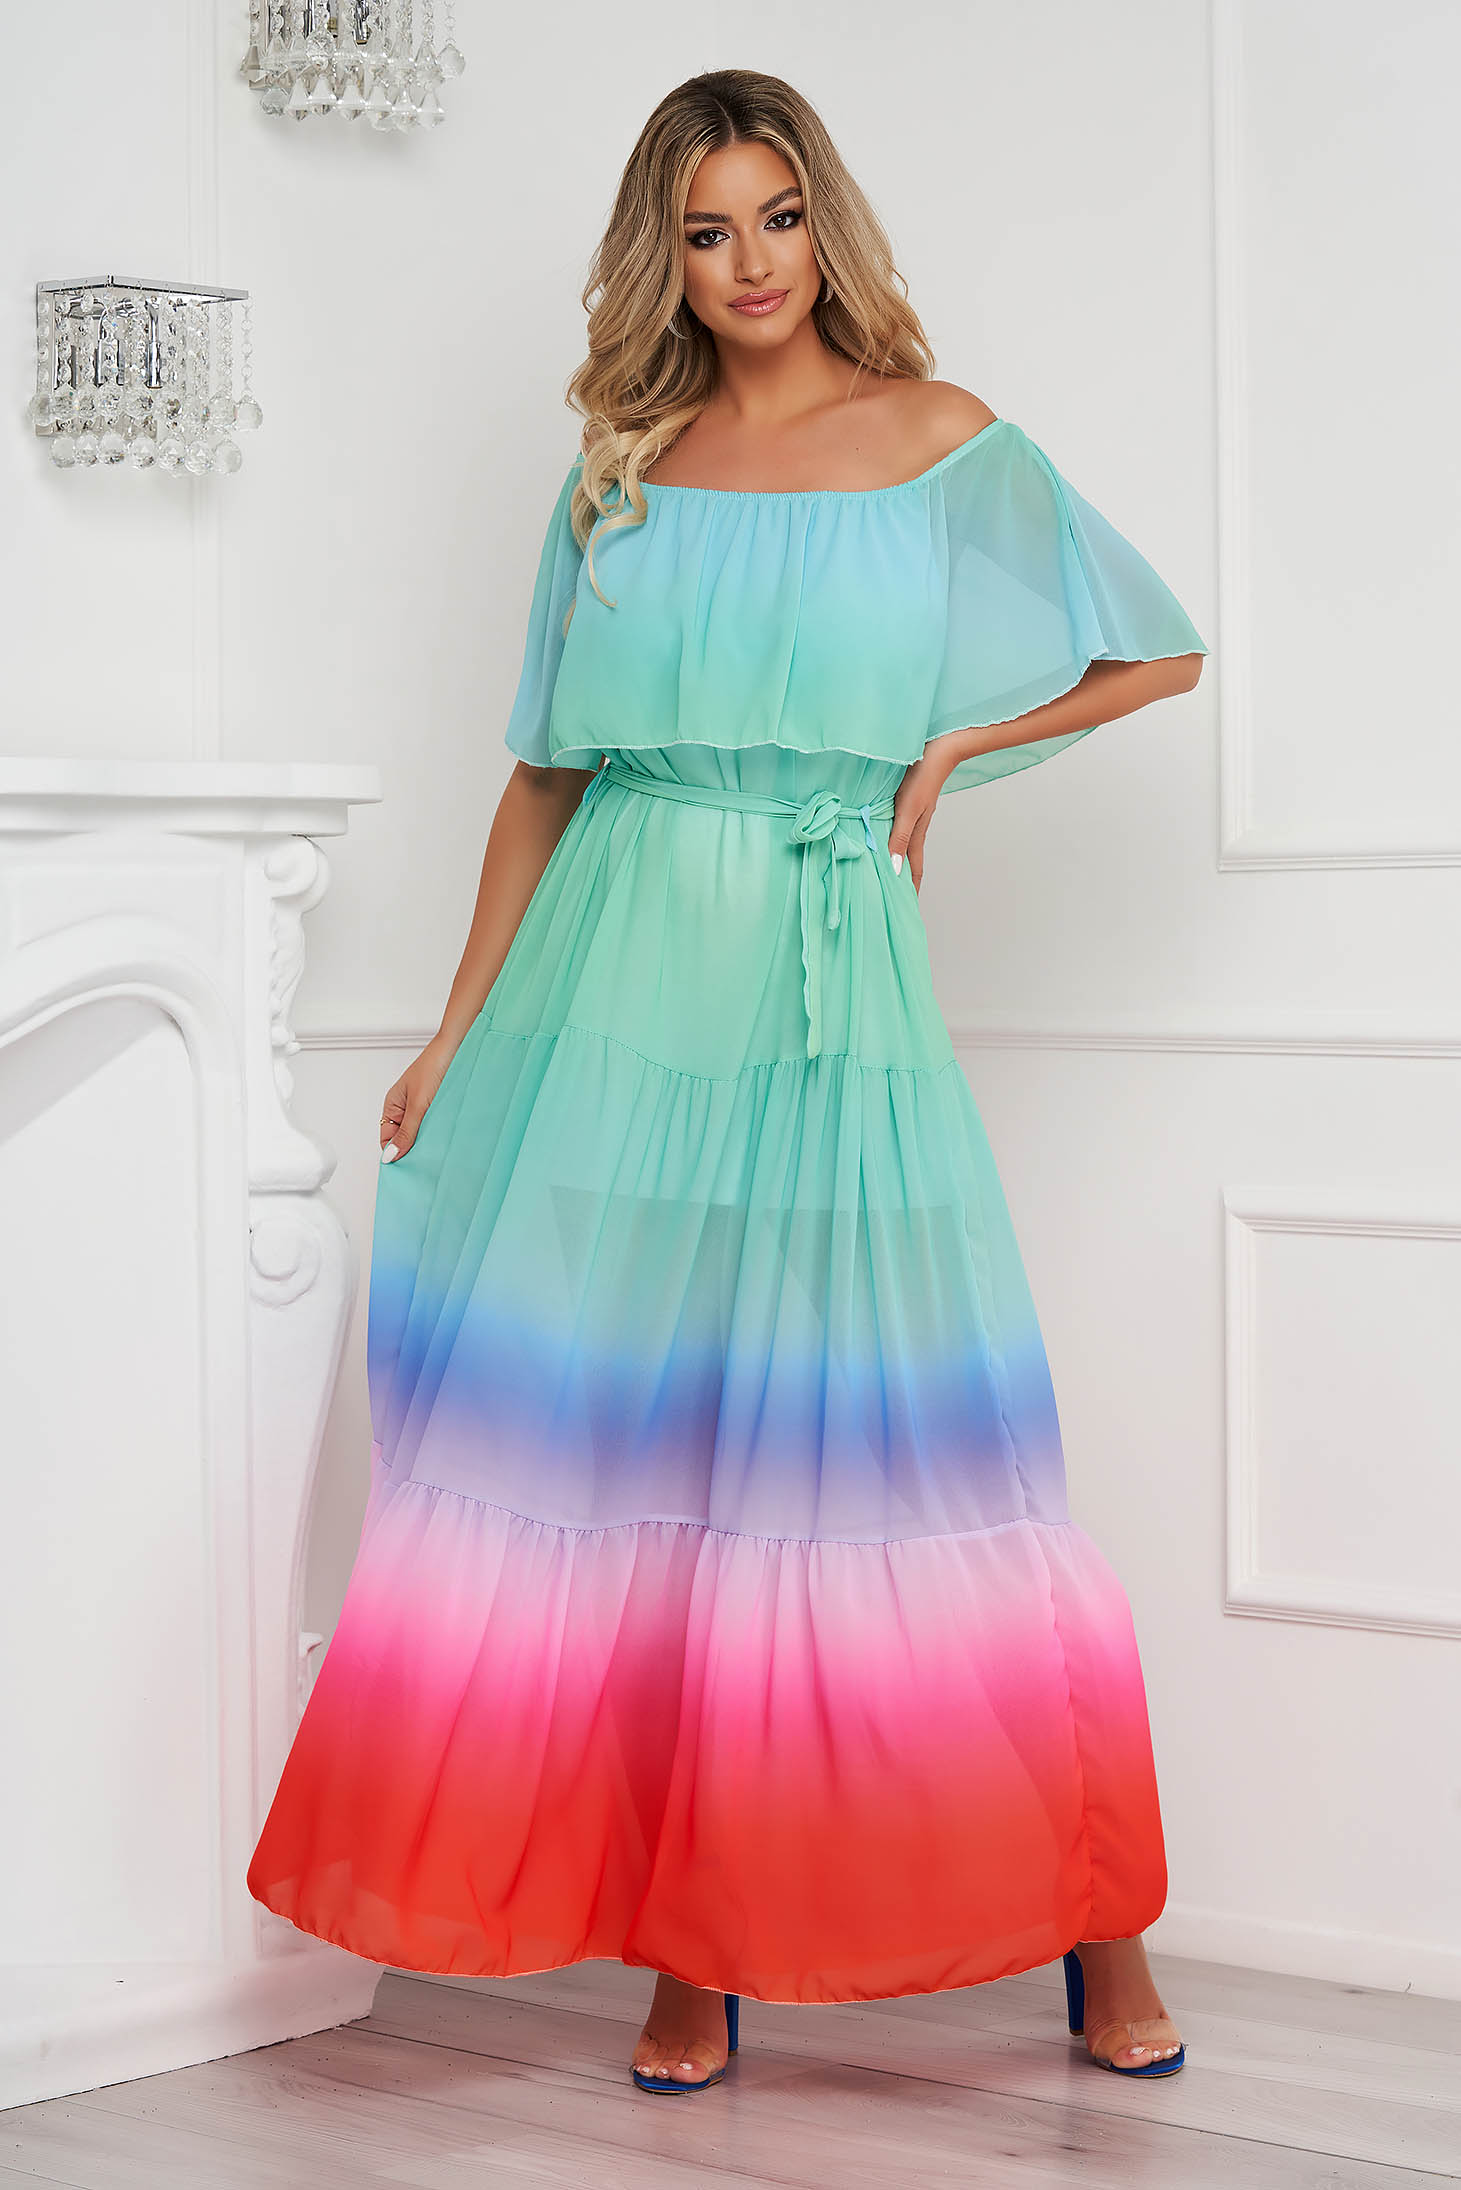 Dress long from veil fabric loose fit naked shoulders accessorized with tied waistband